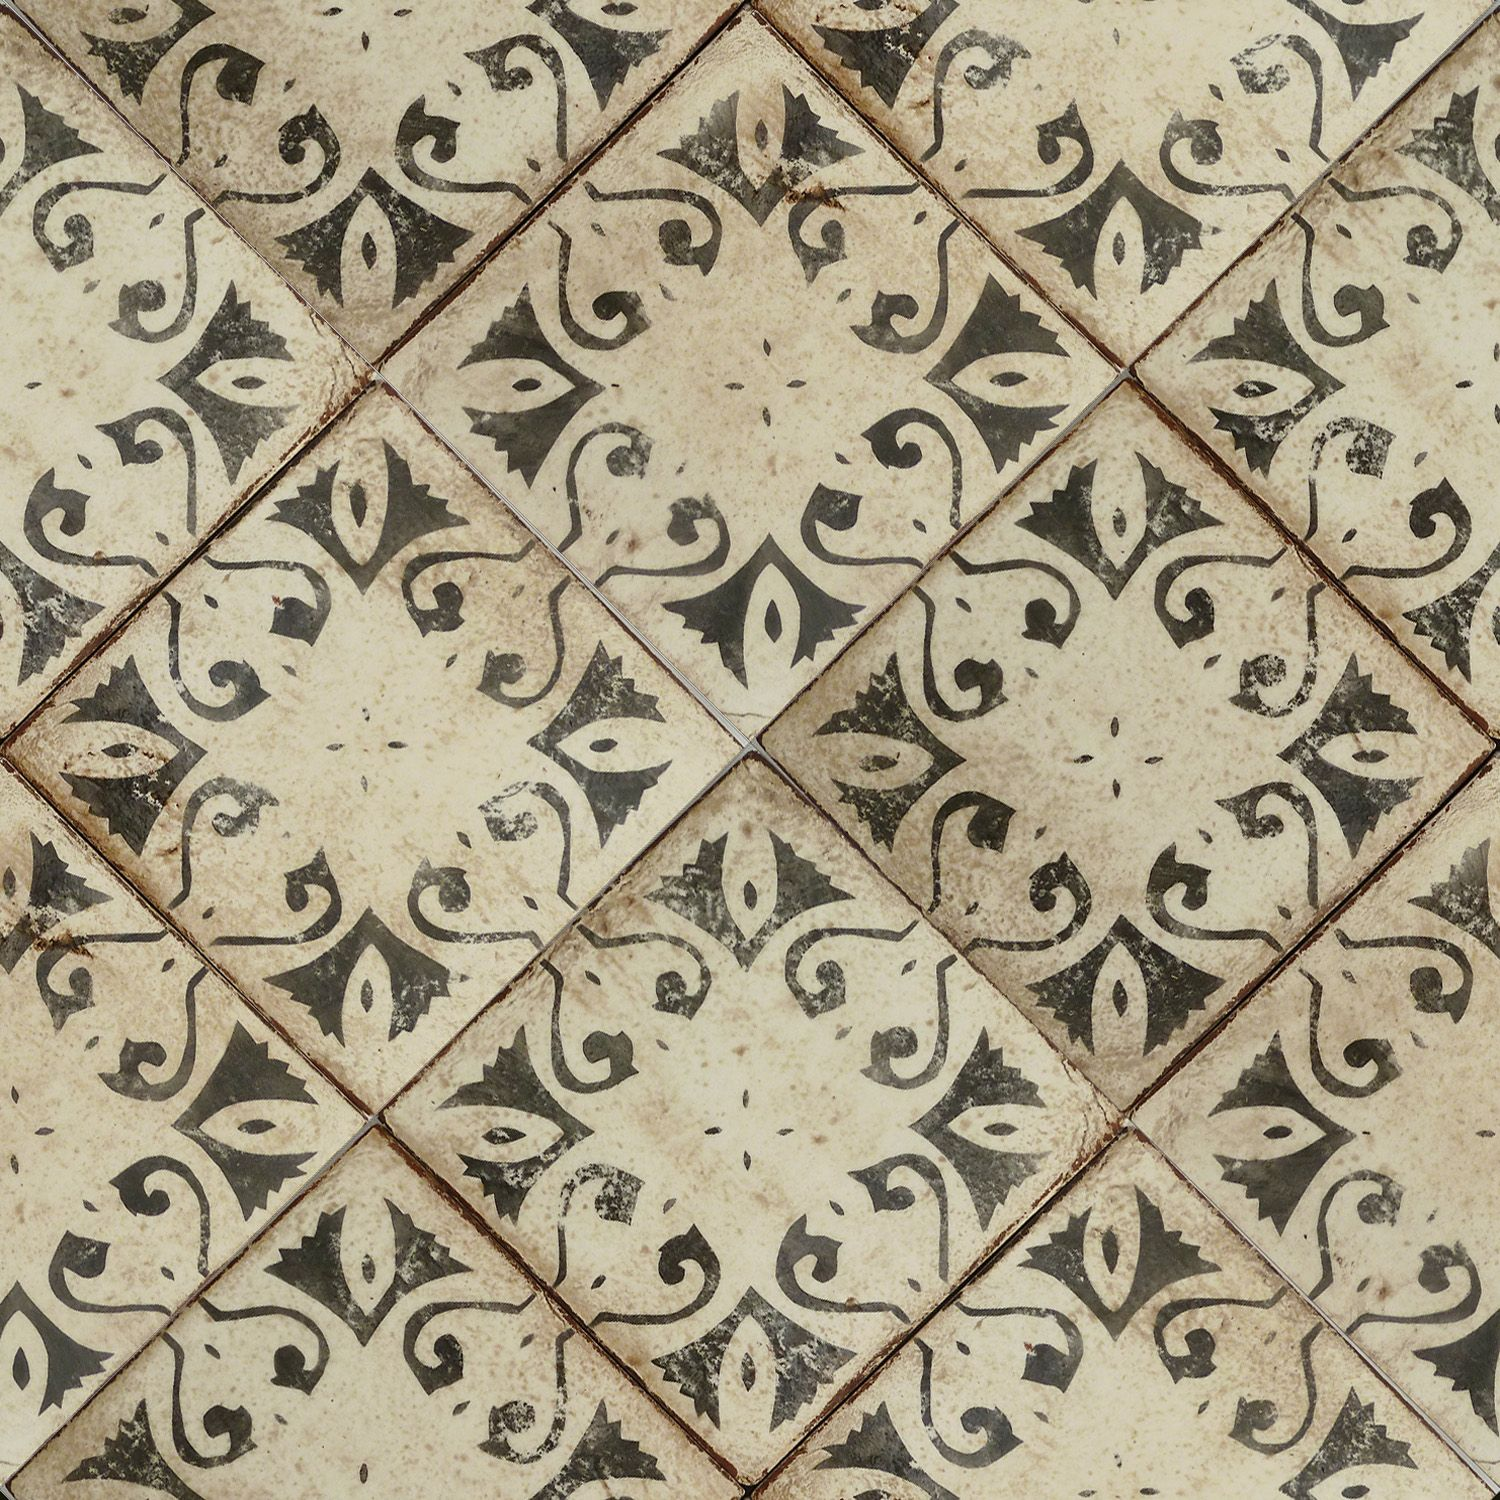 hand-painted terra-cotta tile. classic and elegant mediterranean